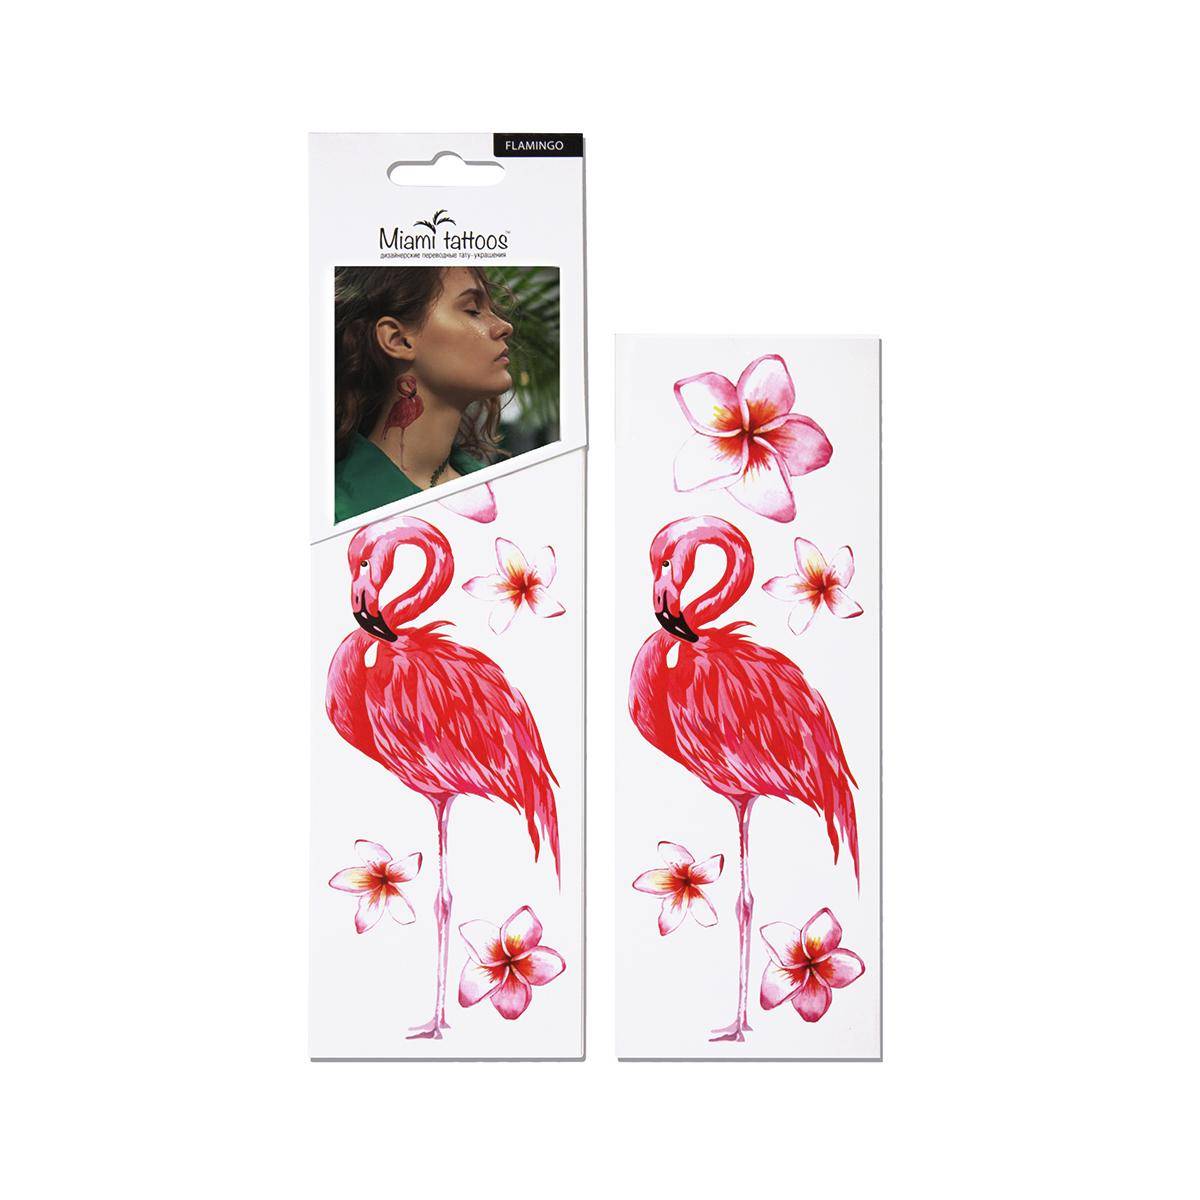 "Переводные тату MiamiTattoos ""Flamingo"" мини;"